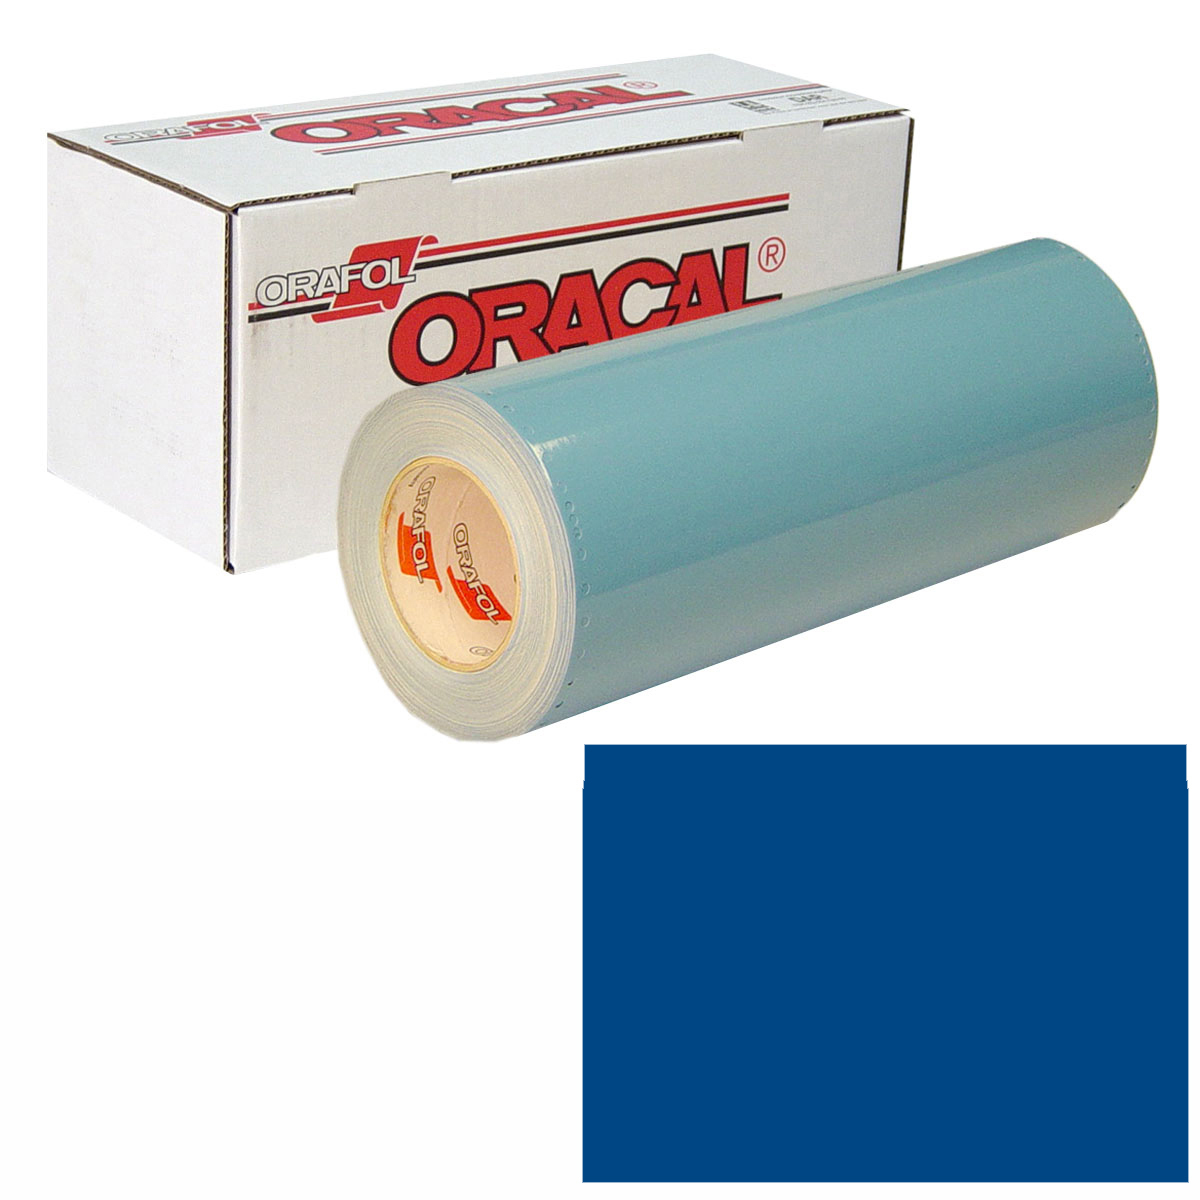 ORACAL 751 Unp 48In X 10Yd 067 Blue